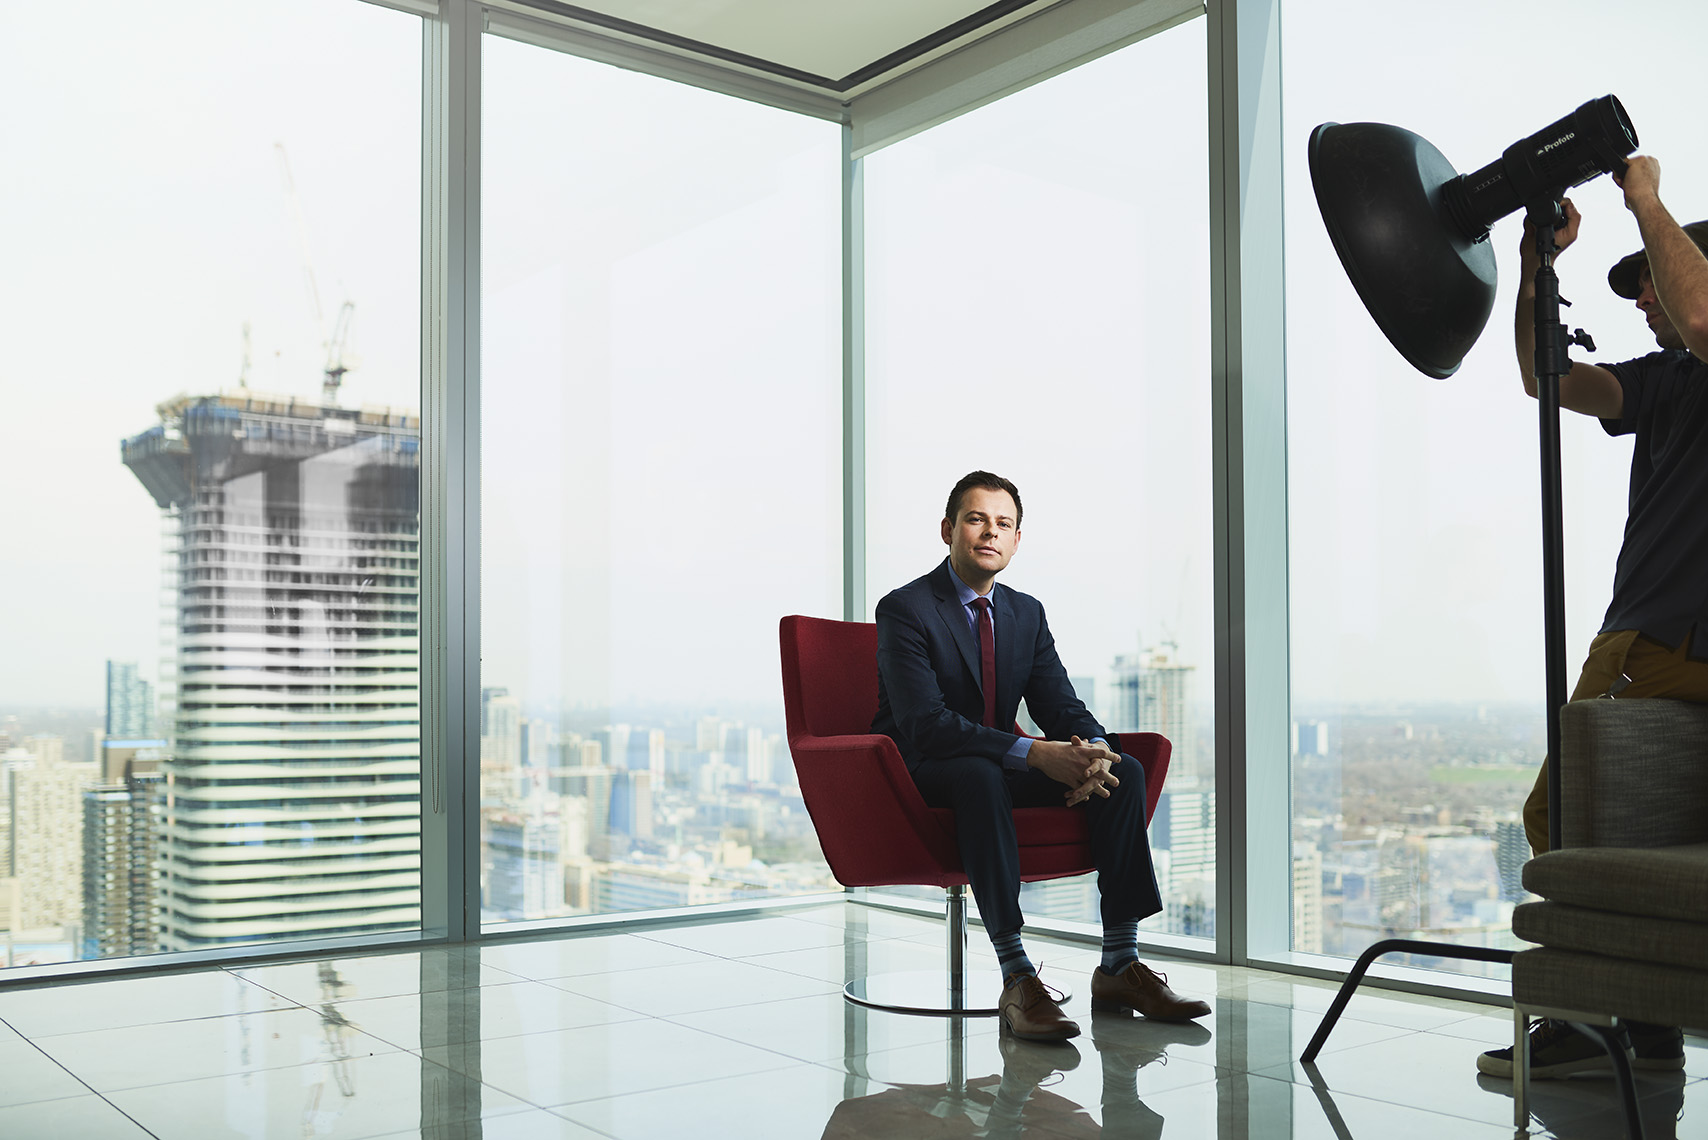 Corporate photograph of business executive in office